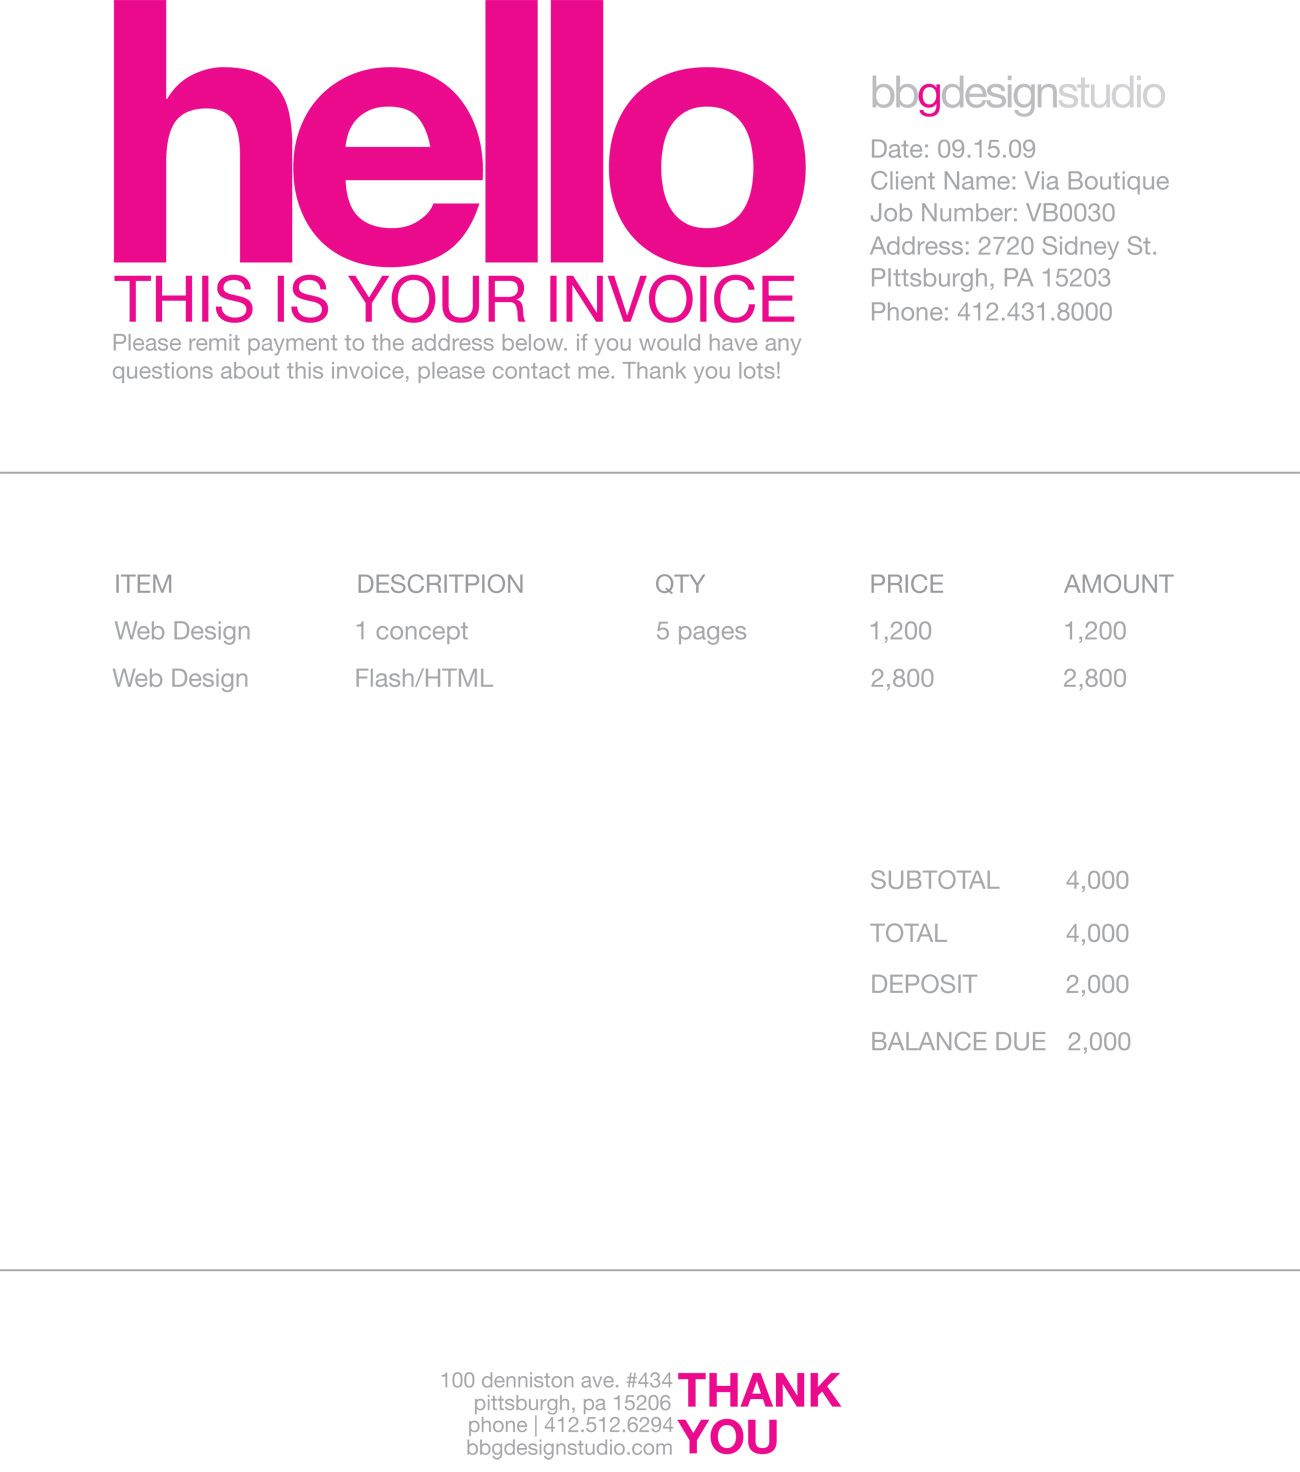 Soulfulpowerus  Pleasing  Images About Invoice Design On Pinterest With Great Easy Invoicing Besides Paper Invoices Furthermore Define Sales Invoice With Captivating Microsoft Word  Invoice Template Also Auto Repair Shop Invoice In Addition Invoice Printing Services And Download Invoice Template Excel As Well As Create An Invoice In Microsoft Word Additionally Sample Invoice Forms From Pinterestcom With Soulfulpowerus  Great  Images About Invoice Design On Pinterest With Captivating Easy Invoicing Besides Paper Invoices Furthermore Define Sales Invoice And Pleasing Microsoft Word  Invoice Template Also Auto Repair Shop Invoice In Addition Invoice Printing Services From Pinterestcom